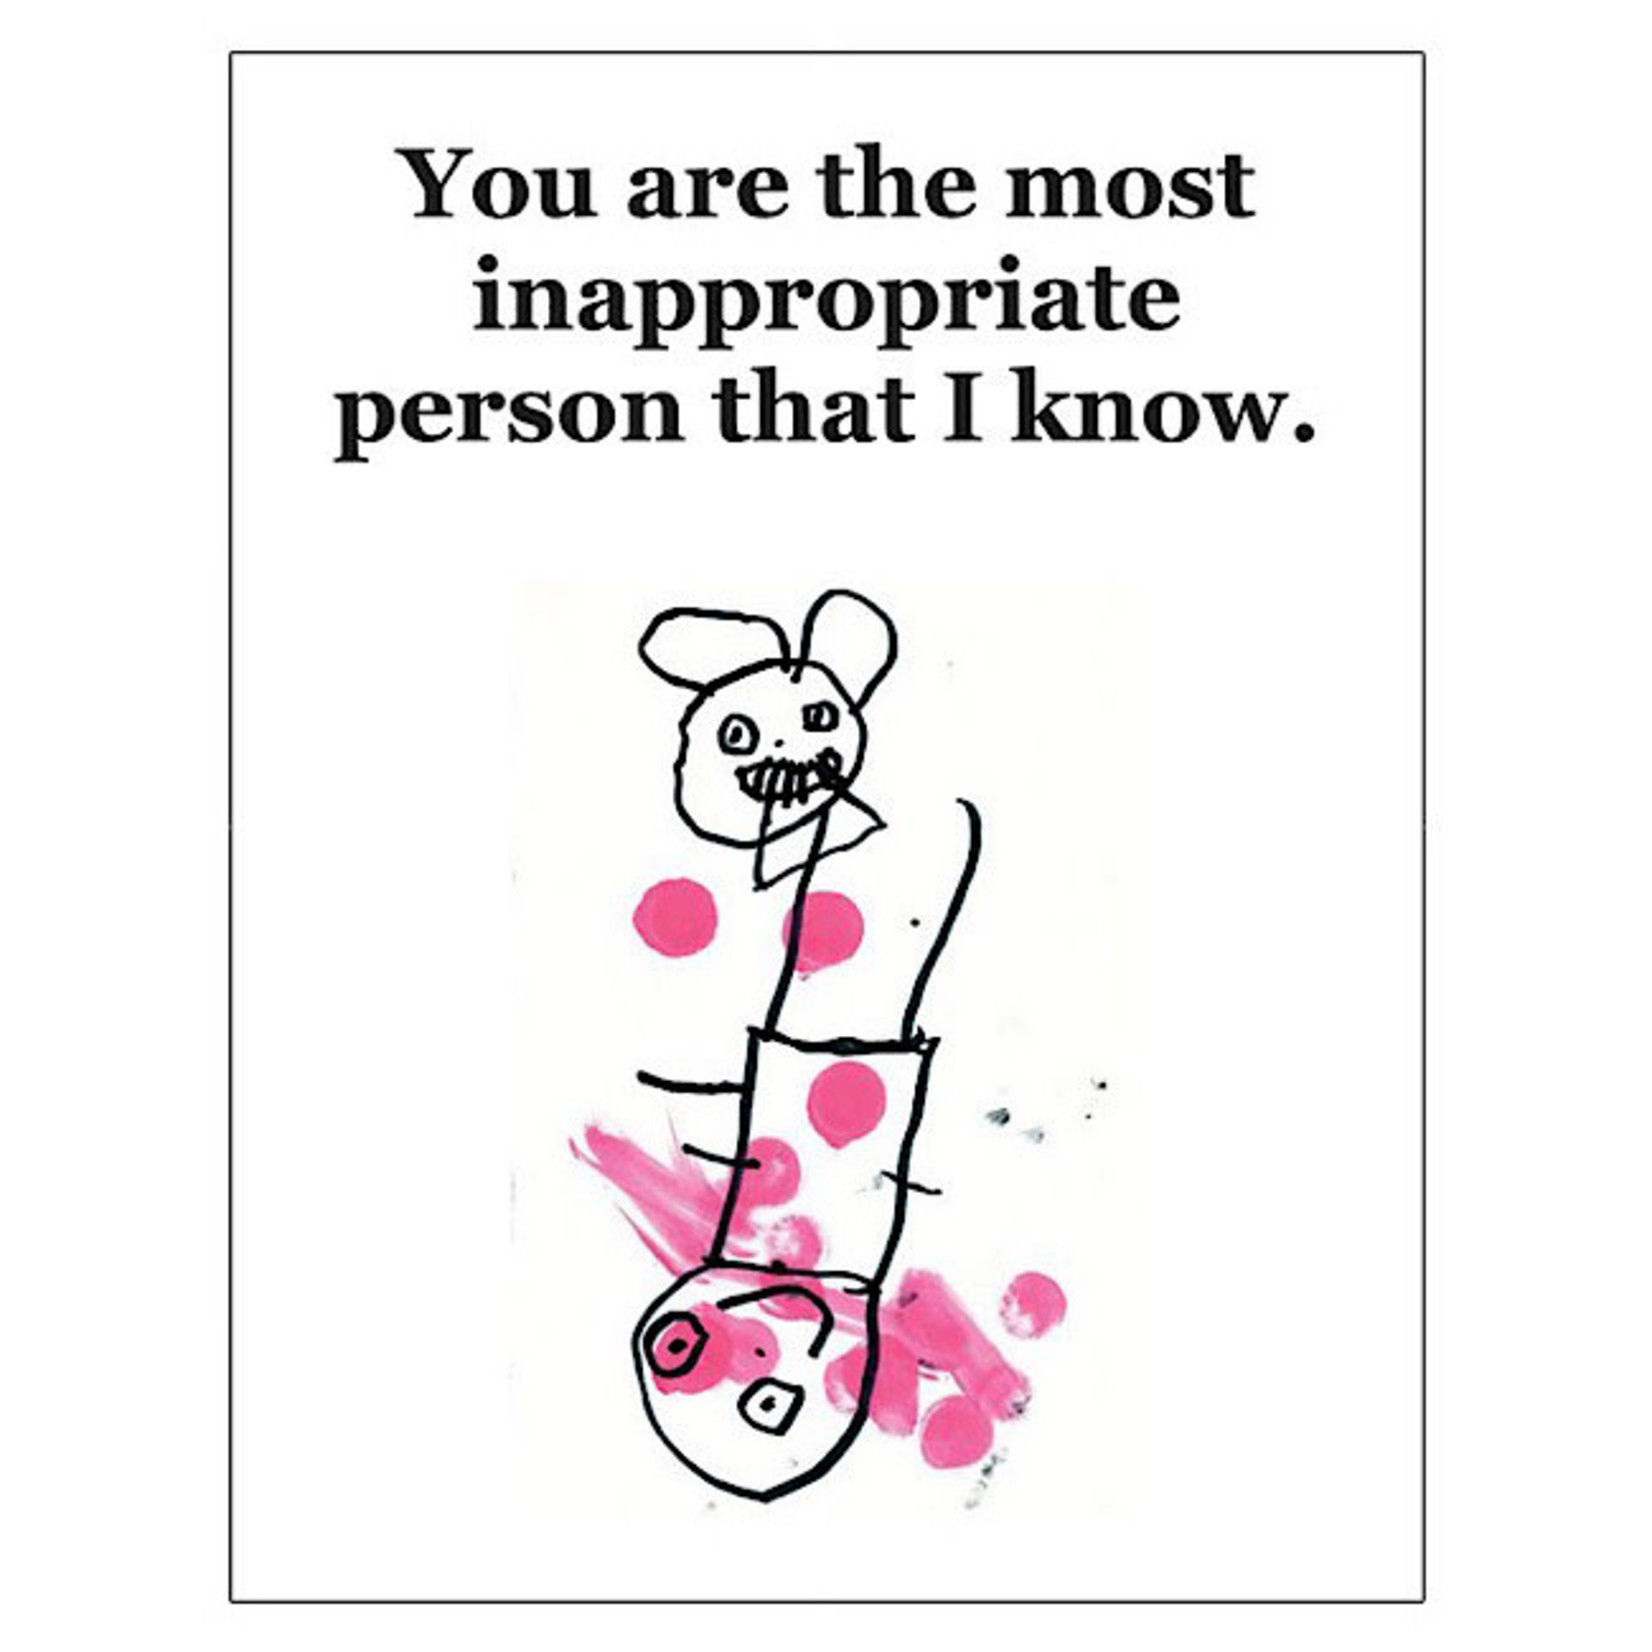 Bad Annie's Card #035 - You Are The Most Inappropriate Person That I Know